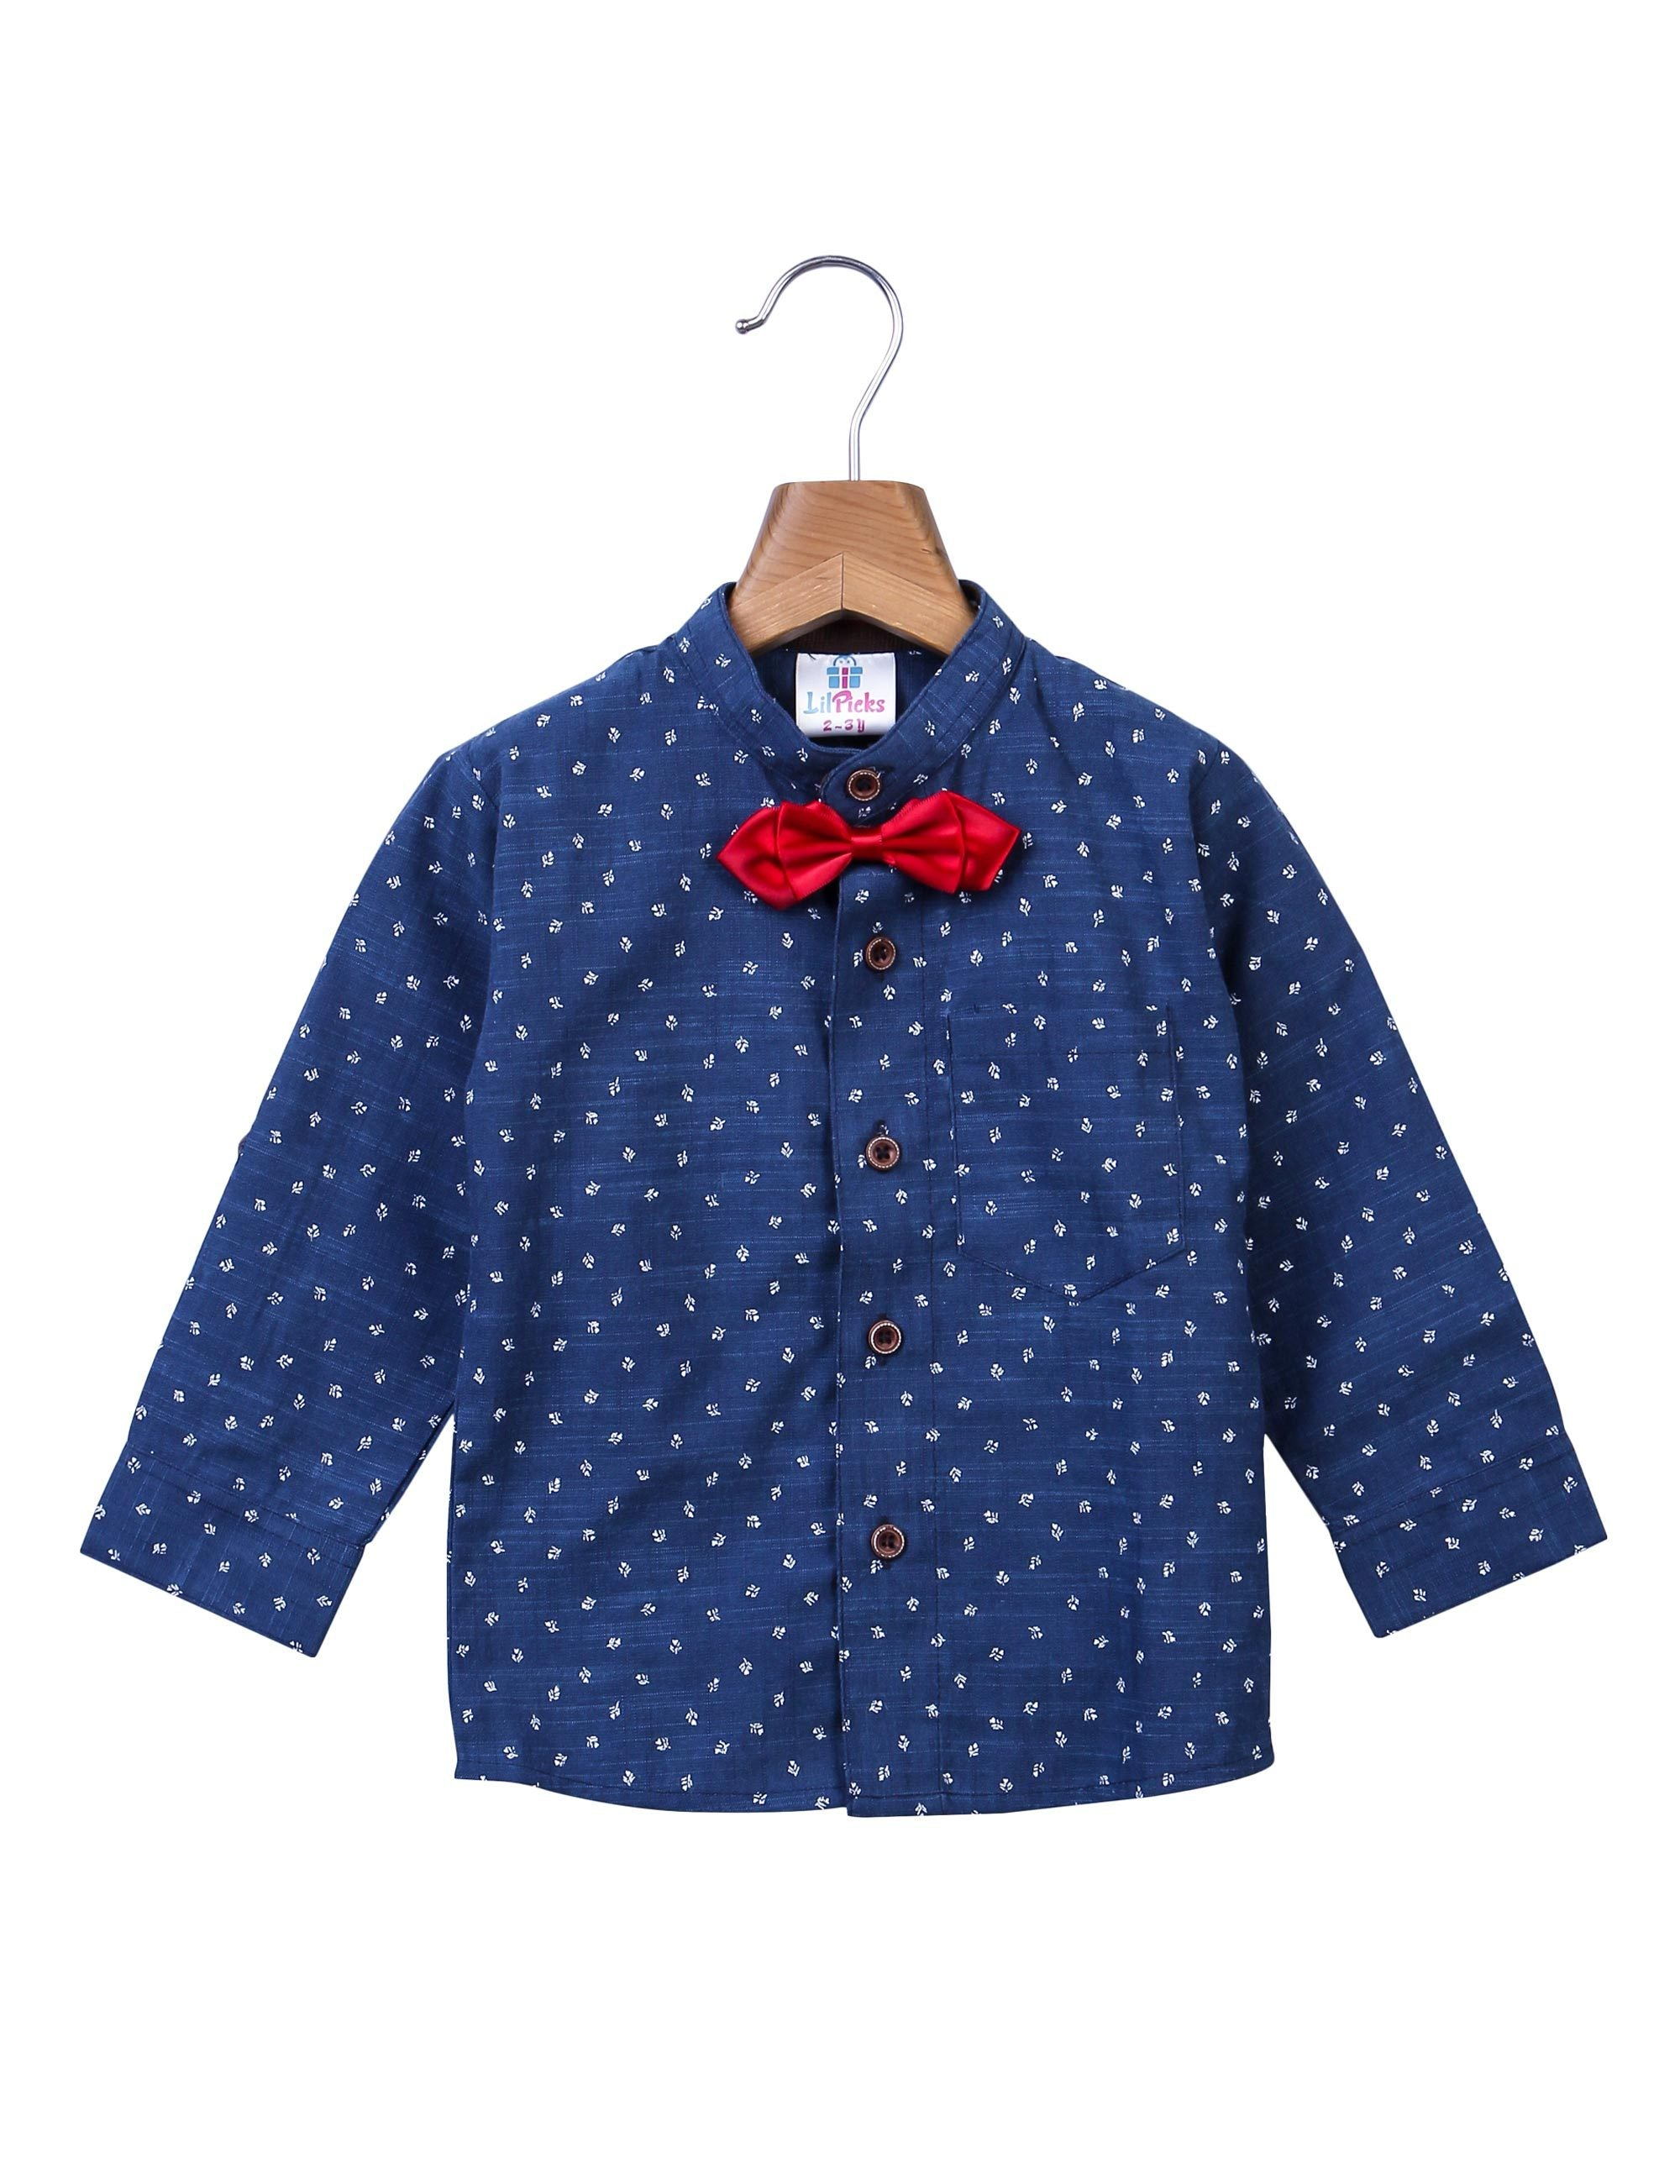 Cotton Shirt with a bow for boys